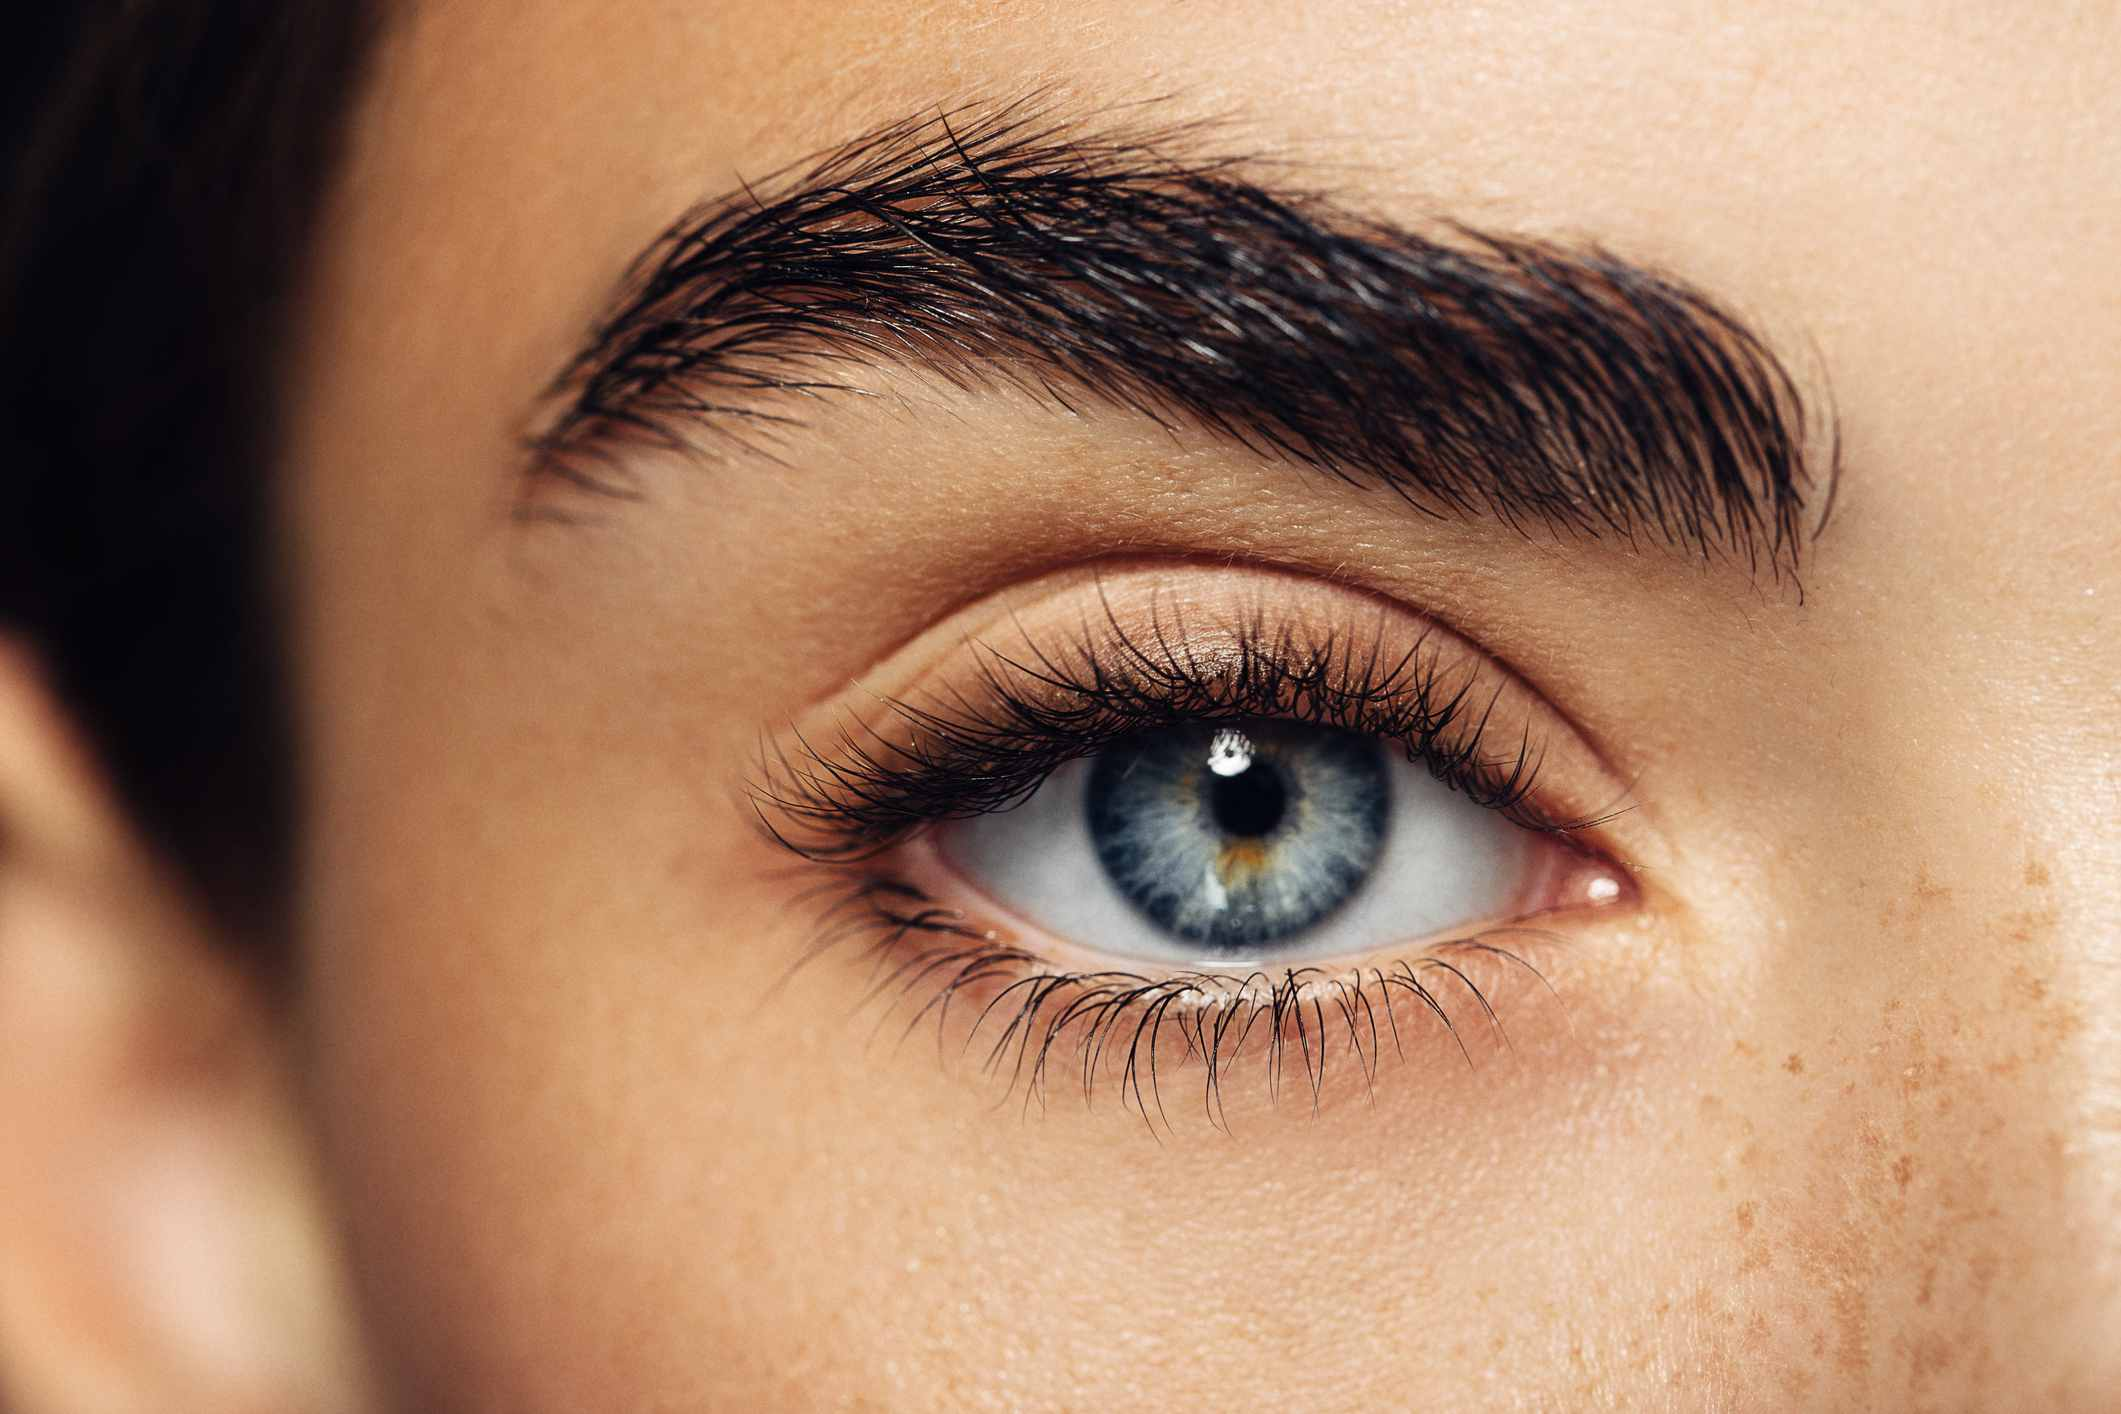 Tweeze Your Way to a Perfectly Shaped Eyebrow With These Tips